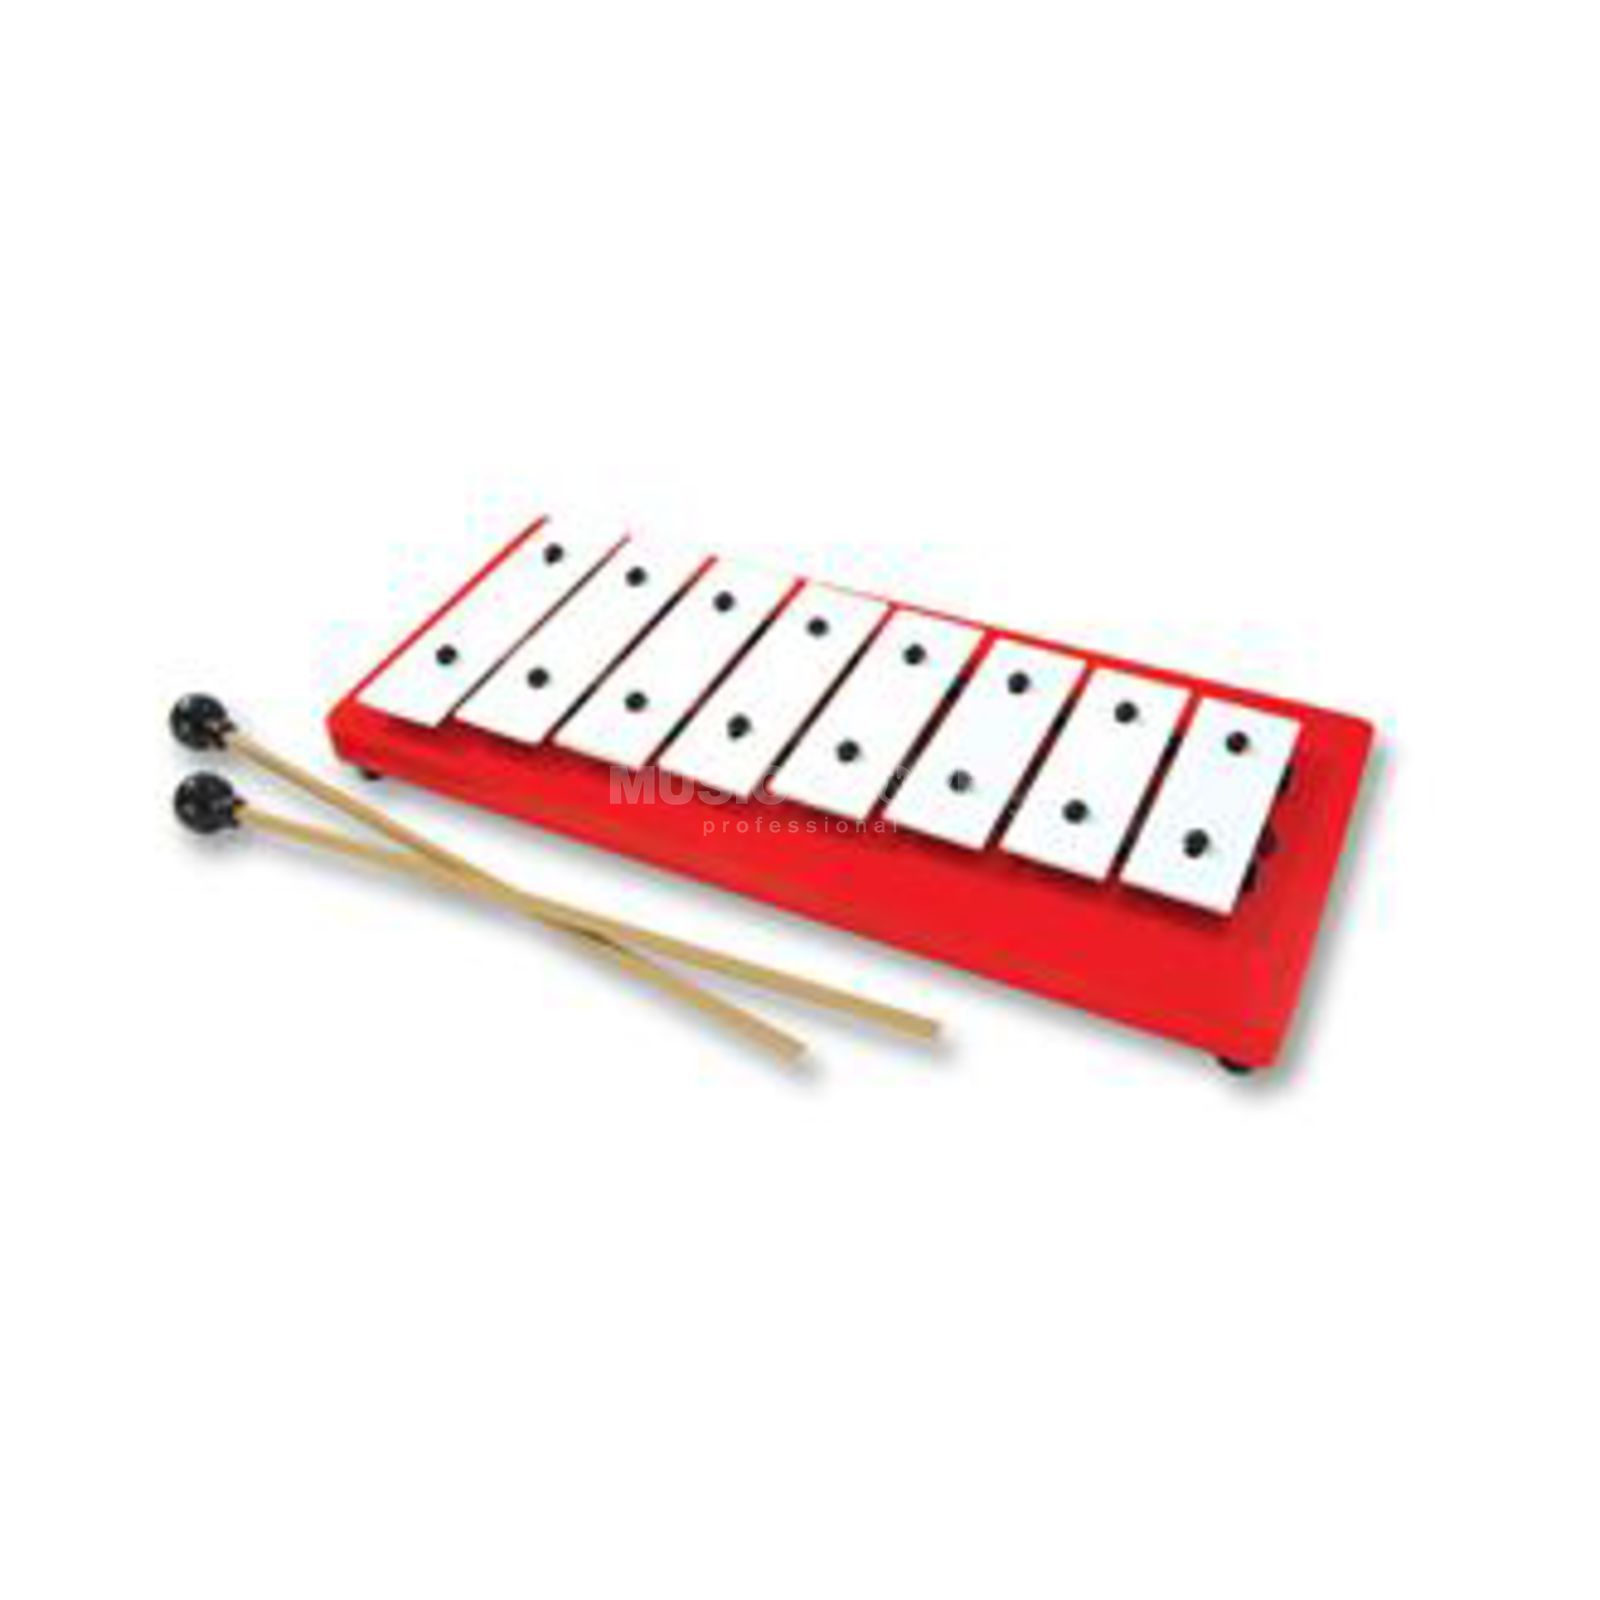 Percussion Plus PP929 Budget Glockenspiel, C64 to C76, incl. Beater, Overstock Product Image